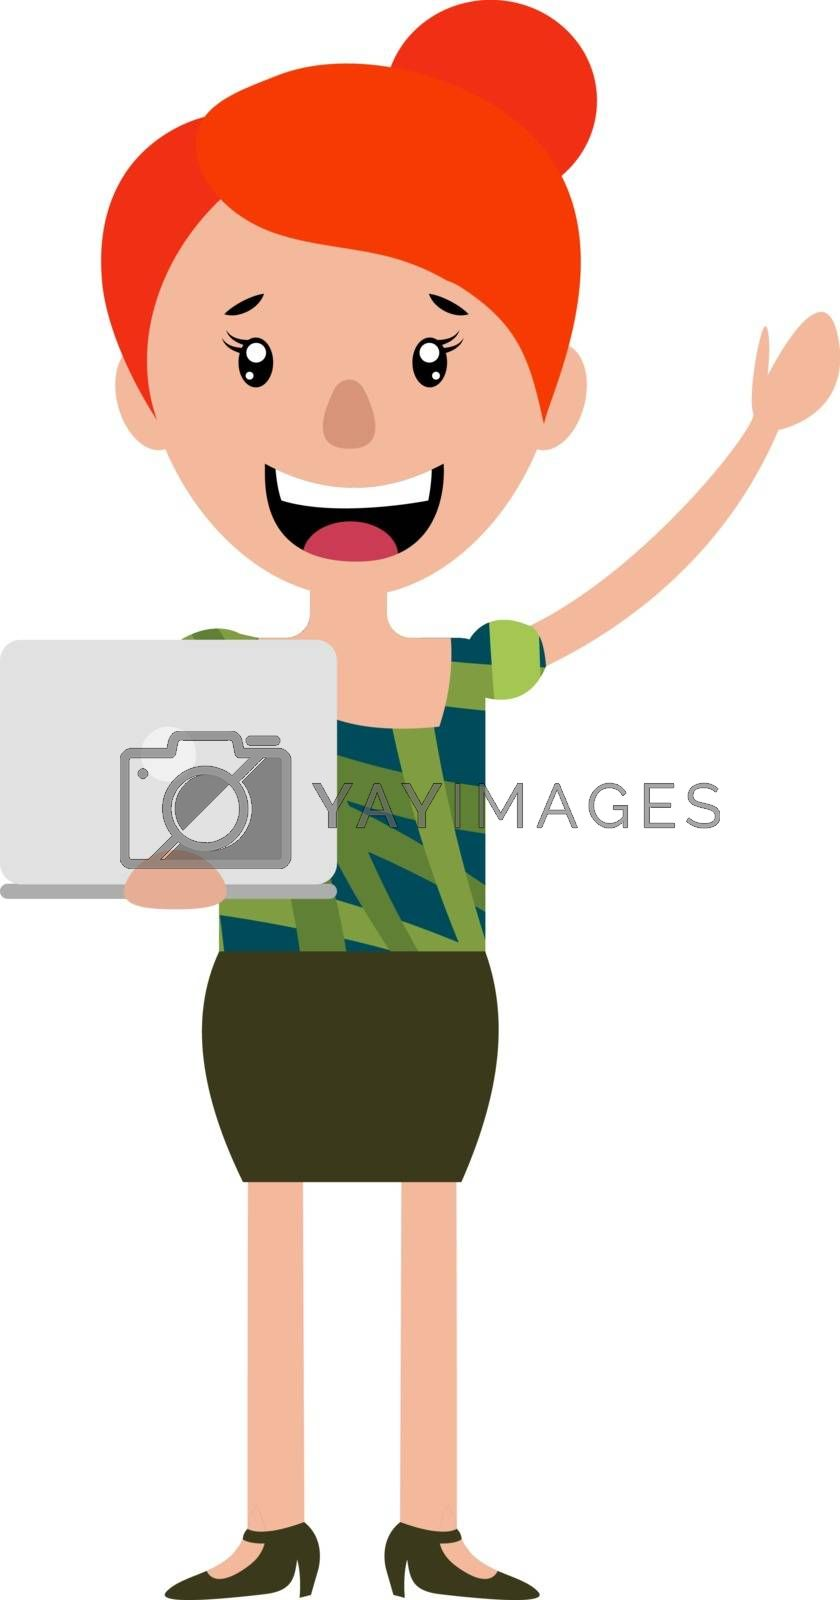 Royalty free image of Happy woman waving and holding a laptop illustration vector on w by Morphart